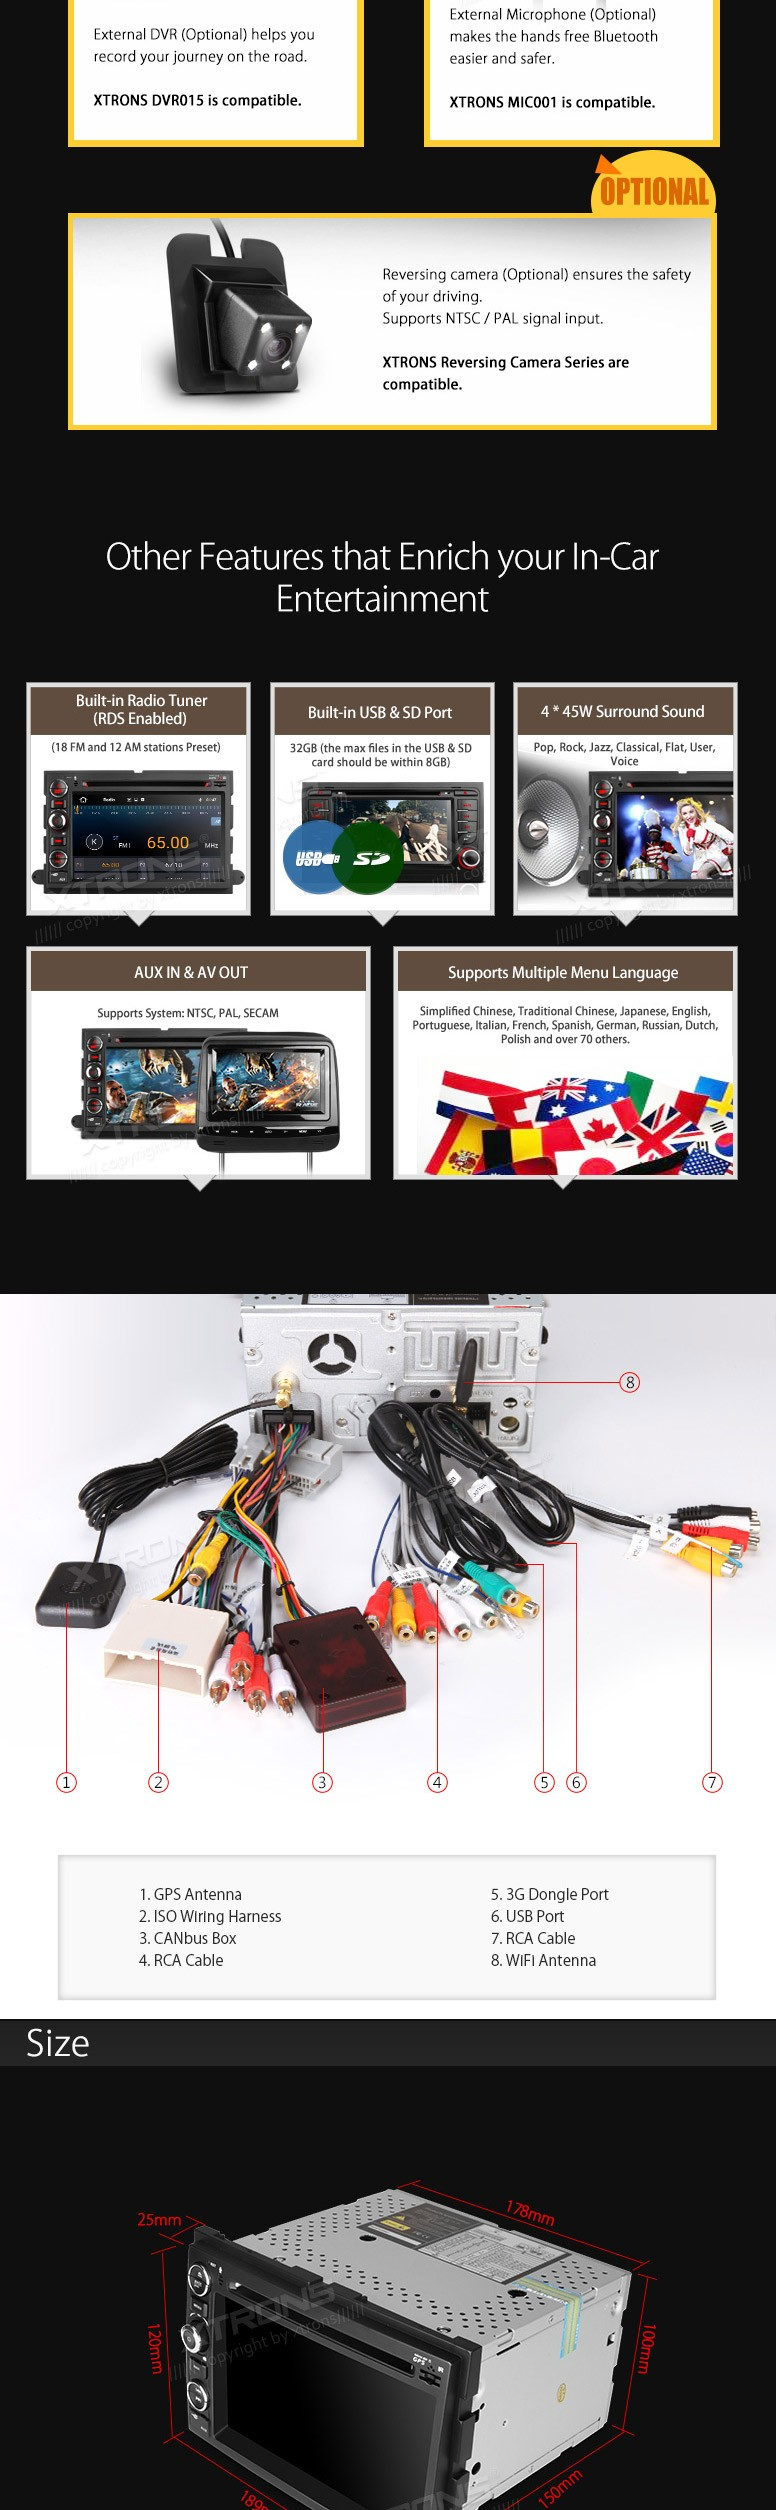 ⊰7 Android 5.1 1080P Video WiFi Car dvd player GPS Navigator For on pony harness, obd0 to obd1 conversion harness, alpine stereo harness, cable harness, safety harness, nakamichi harness, oxygen sensor extension harness, swing harness, engine harness, amp bypass harness, battery harness, electrical harness, pet harness, suspension harness, maxi-seal harness, radio harness, fall protection harness, dog harness,